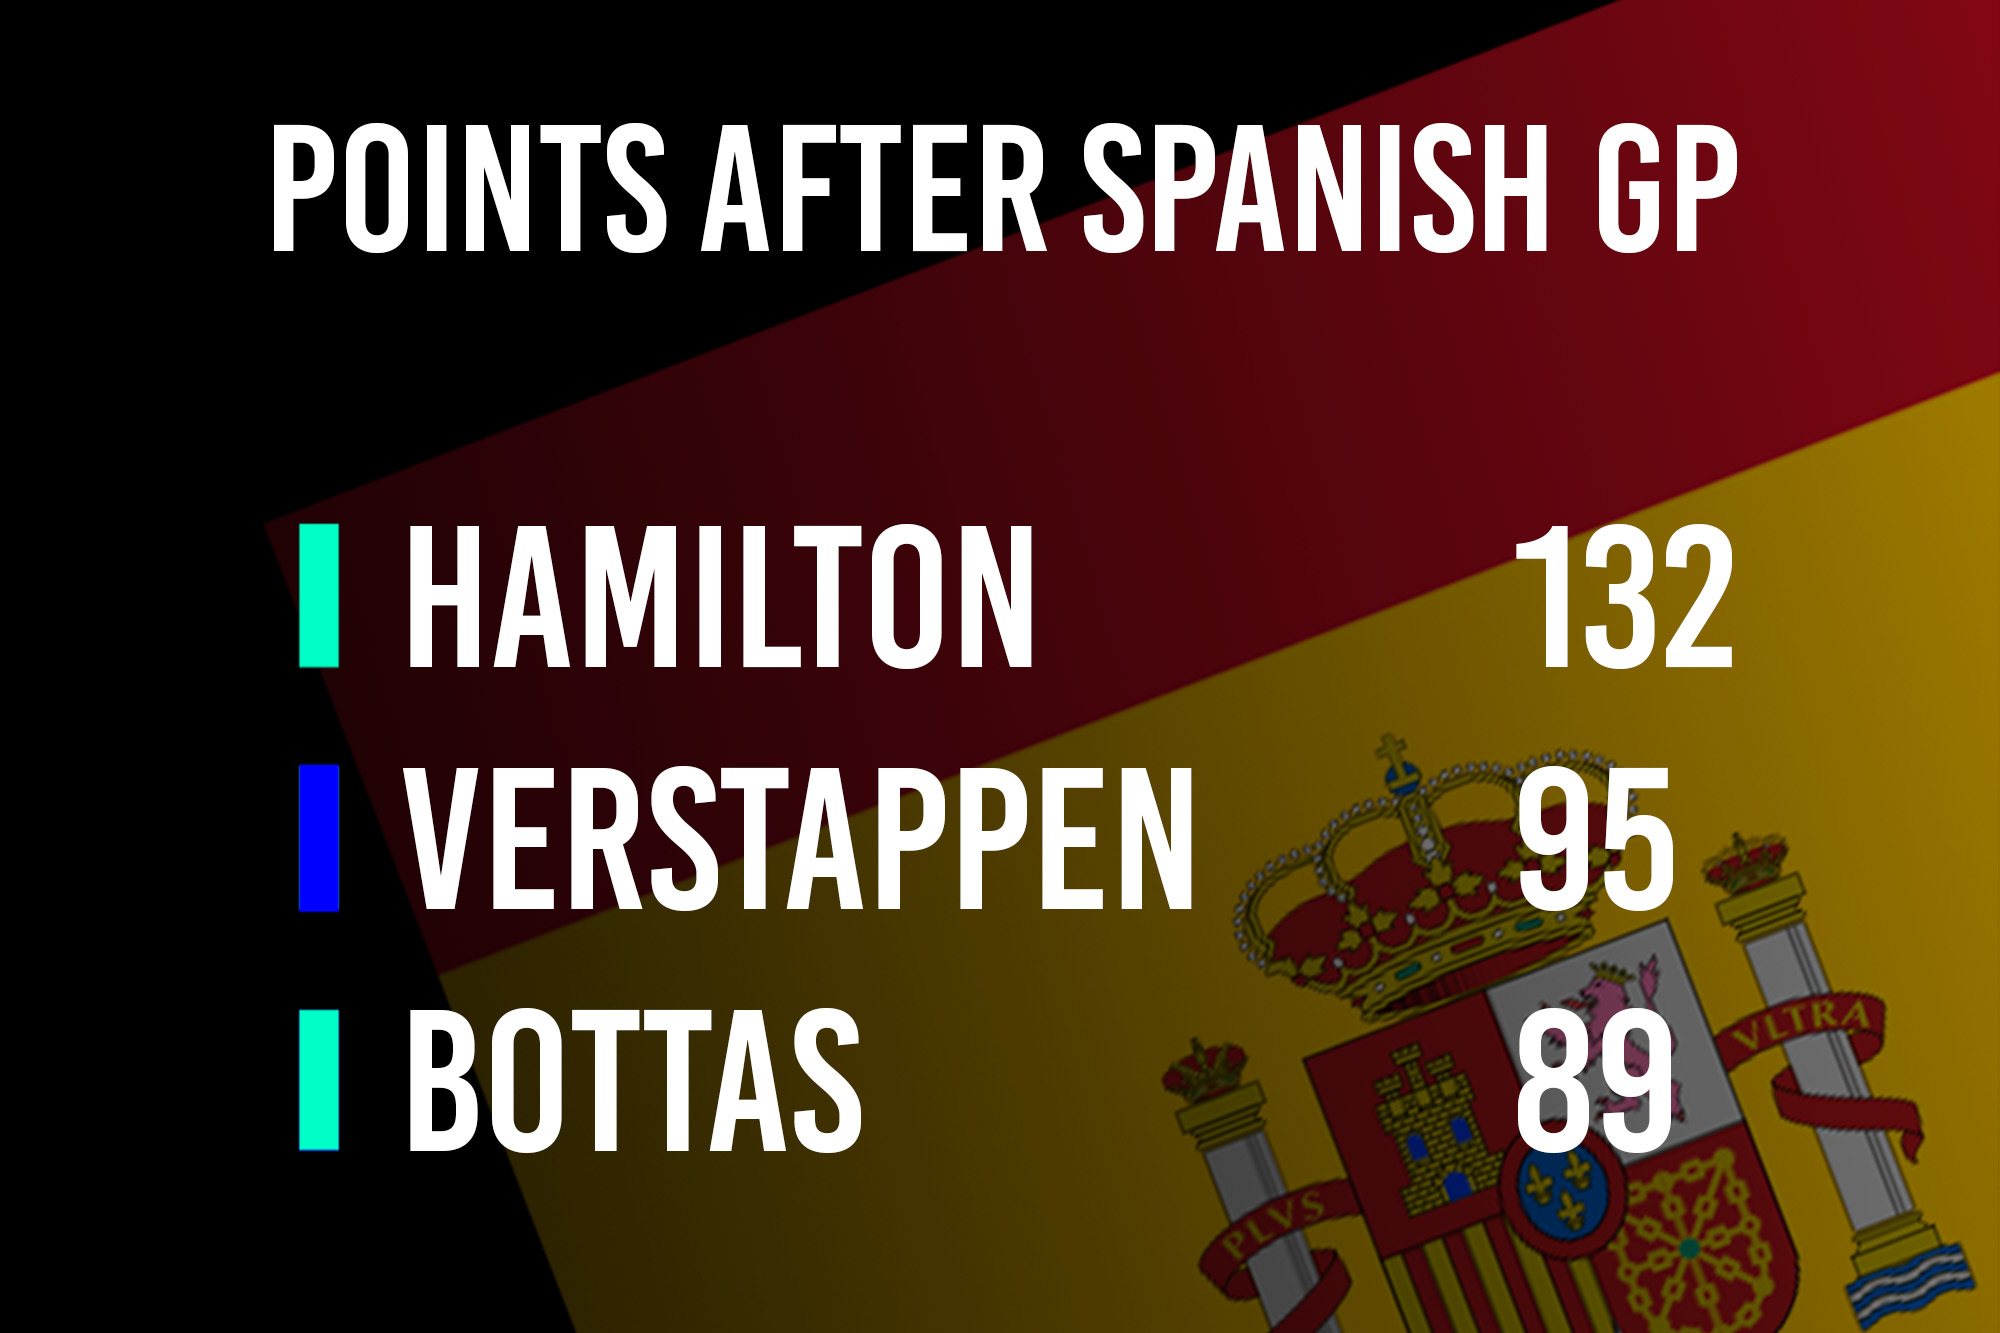 After Spain